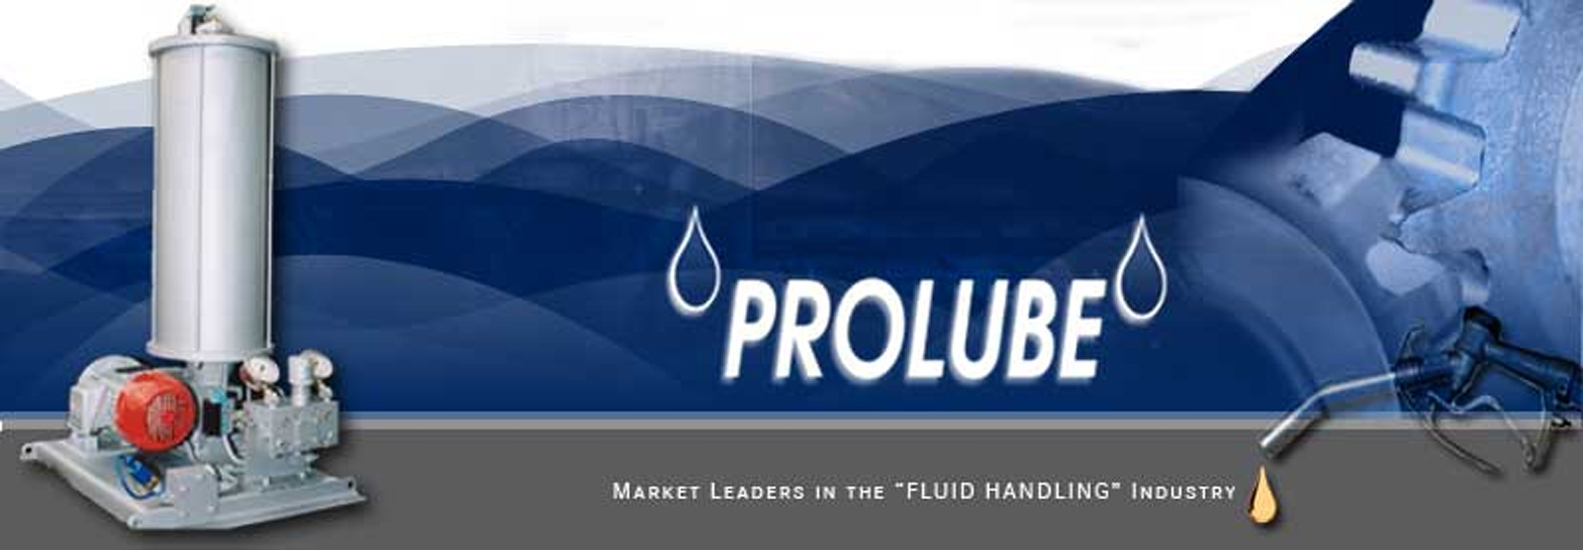 Prolube Marketing